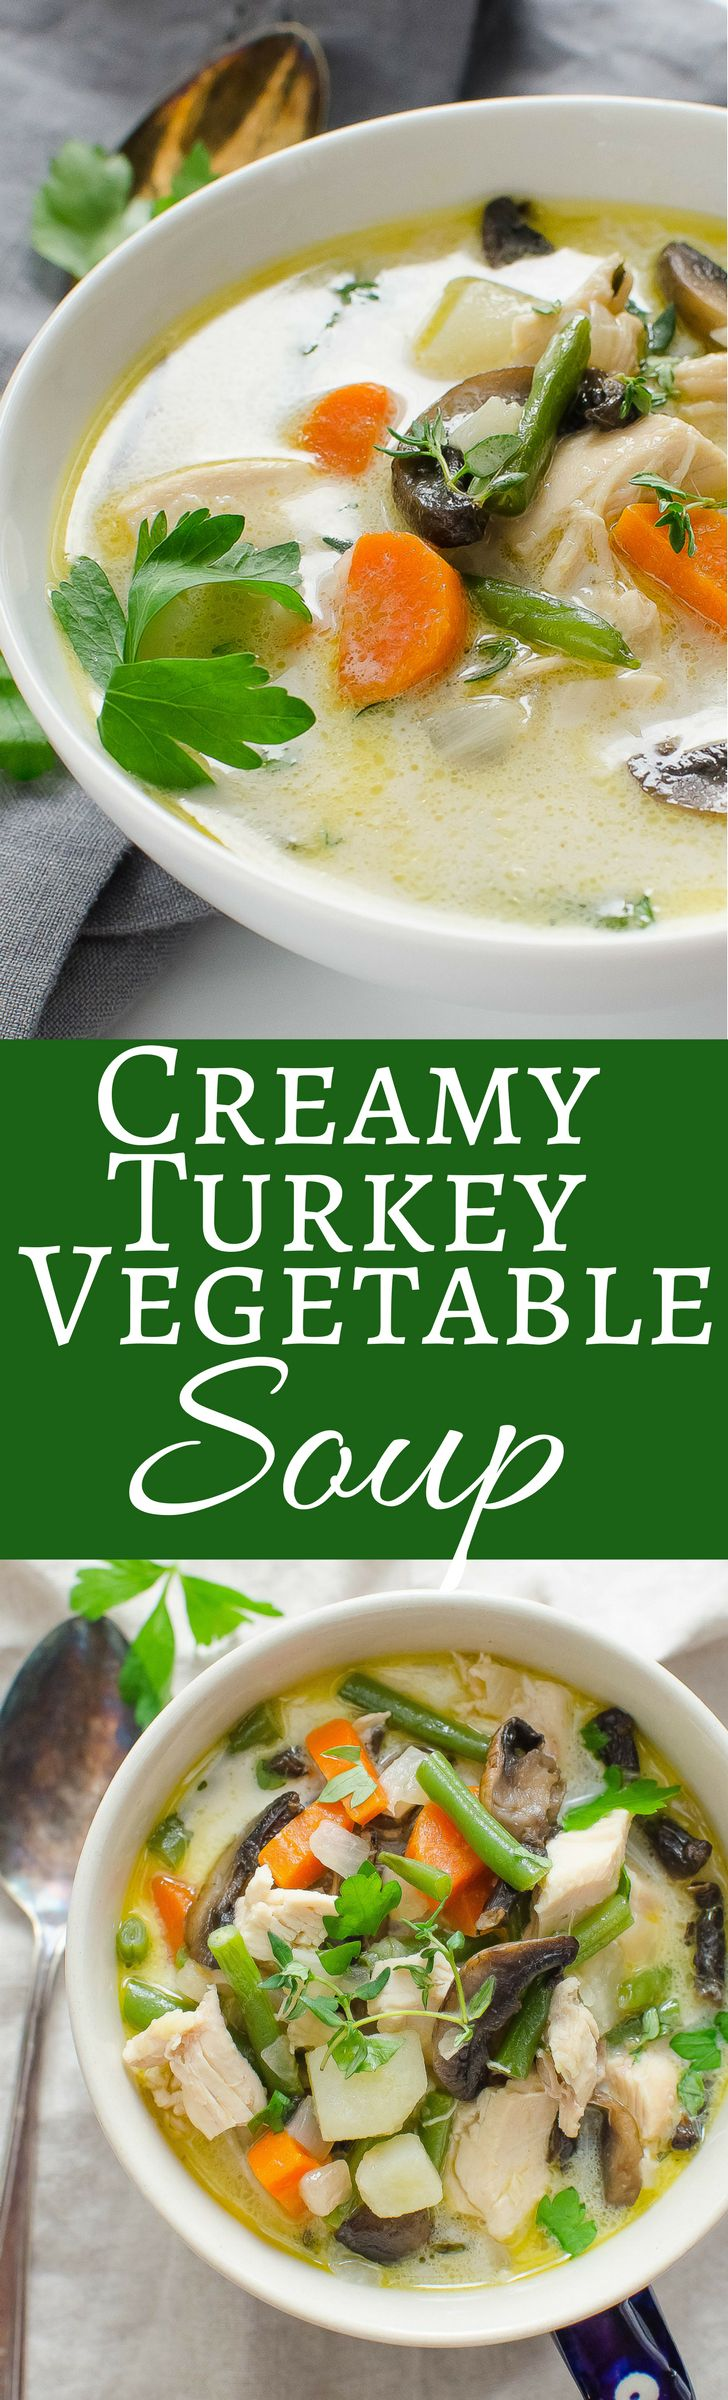 I want some of this Creamy Turkey Vegetable Soup right now. Looks SOOOO good!